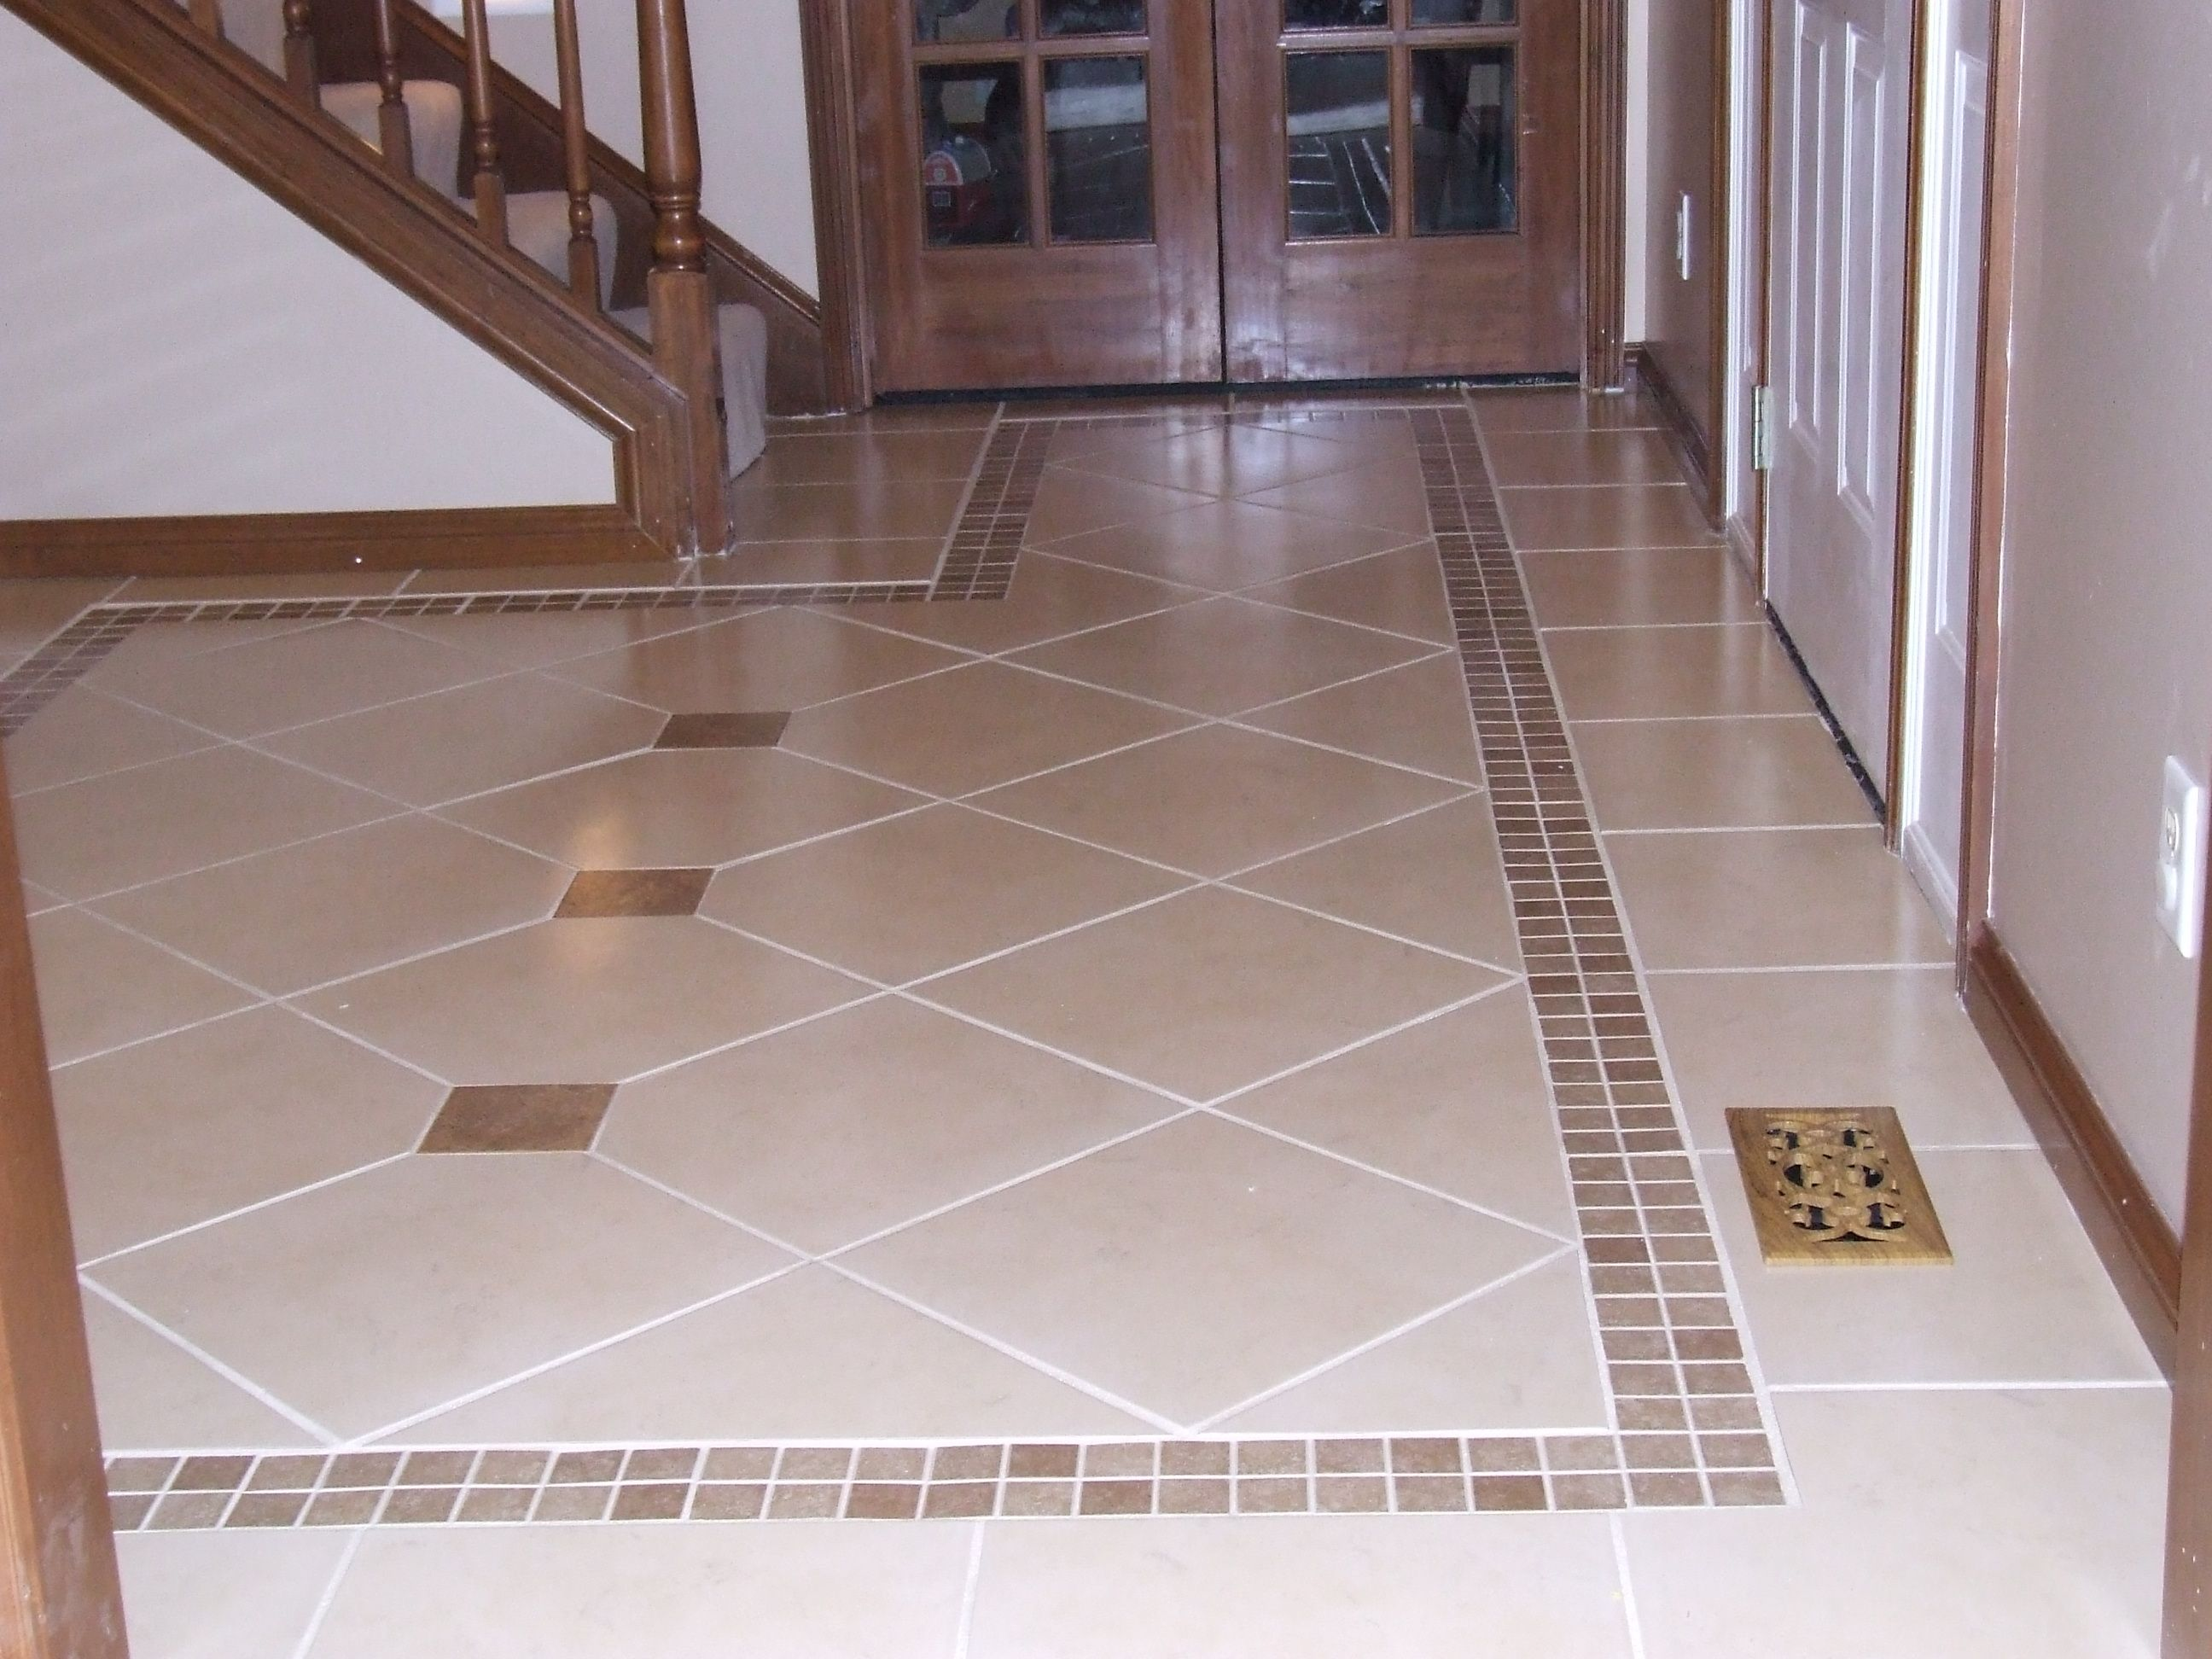 kitchen floor tile design ideas house design floor tiles types home tile design ideas tile - Carpet Tile Design Ideas